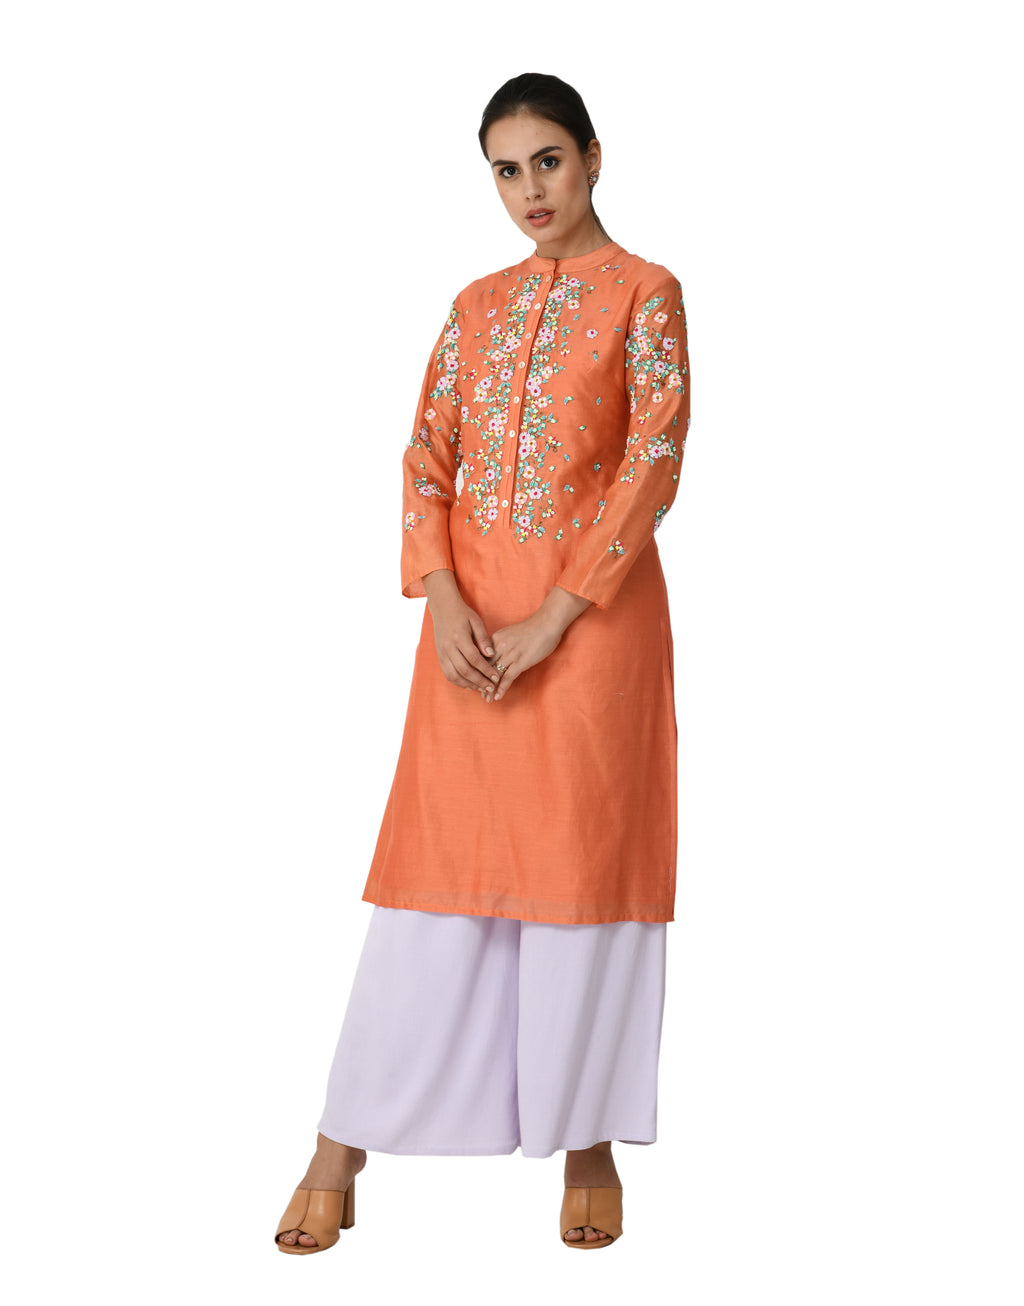 5X By Ajit Kumar - Powder Orange Placket Floral Kurta Set - INDIASPOPUP.COM